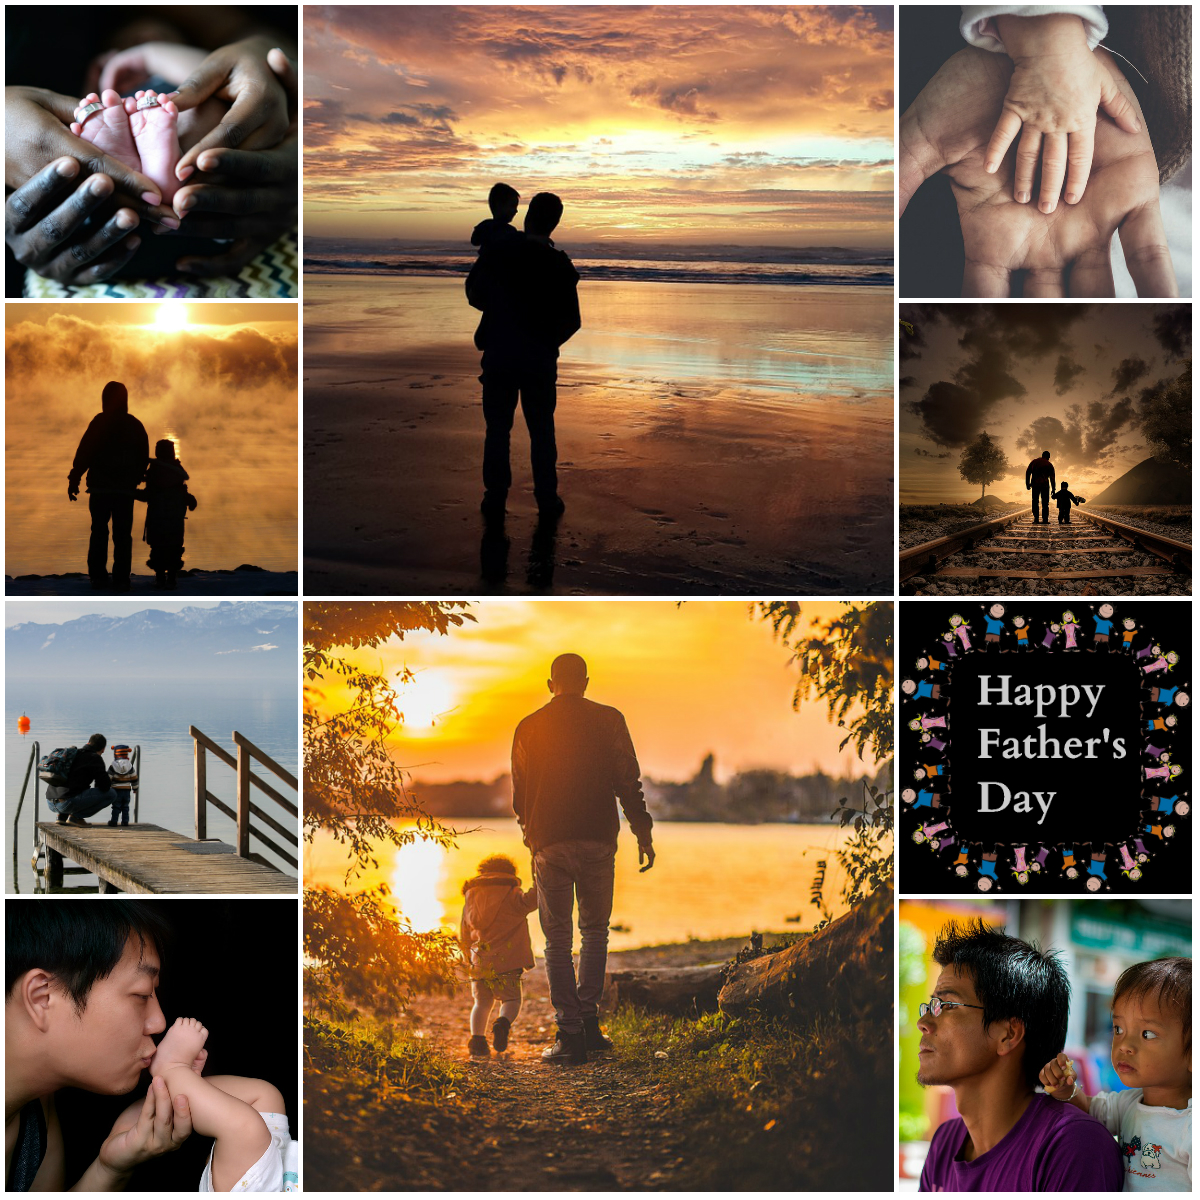 Motivation Mondays: For Our Fathers #fathersday